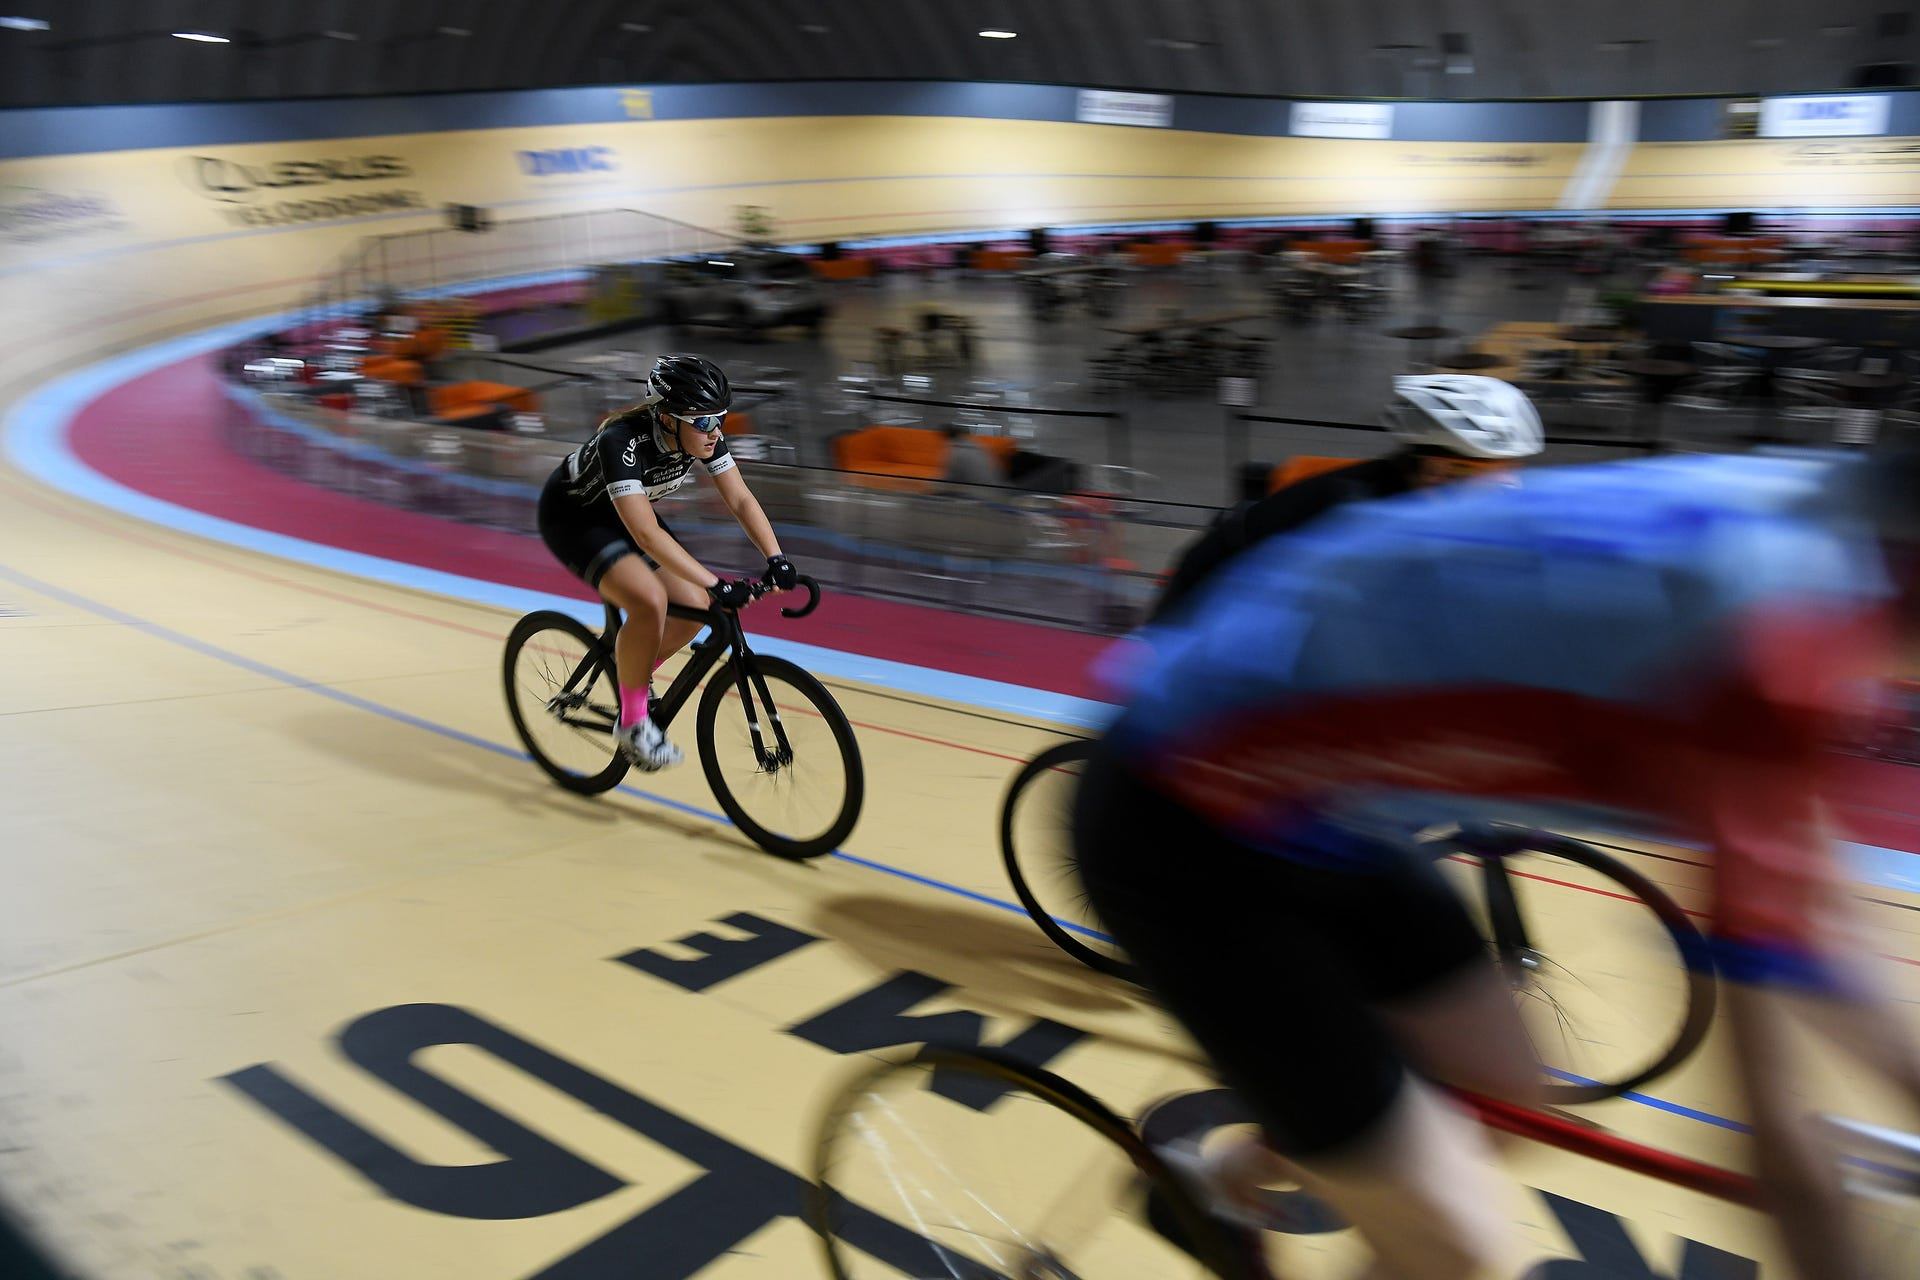 Autumn Caya, 15, of Shelby Township, left, rides warm up laps at the Thursday night structured training at the Lexus Velodrome in Detroit on June 13, 2019. Caya is one of the youth going to the National Track Championship in California.Robin Buckson, The Detroit News